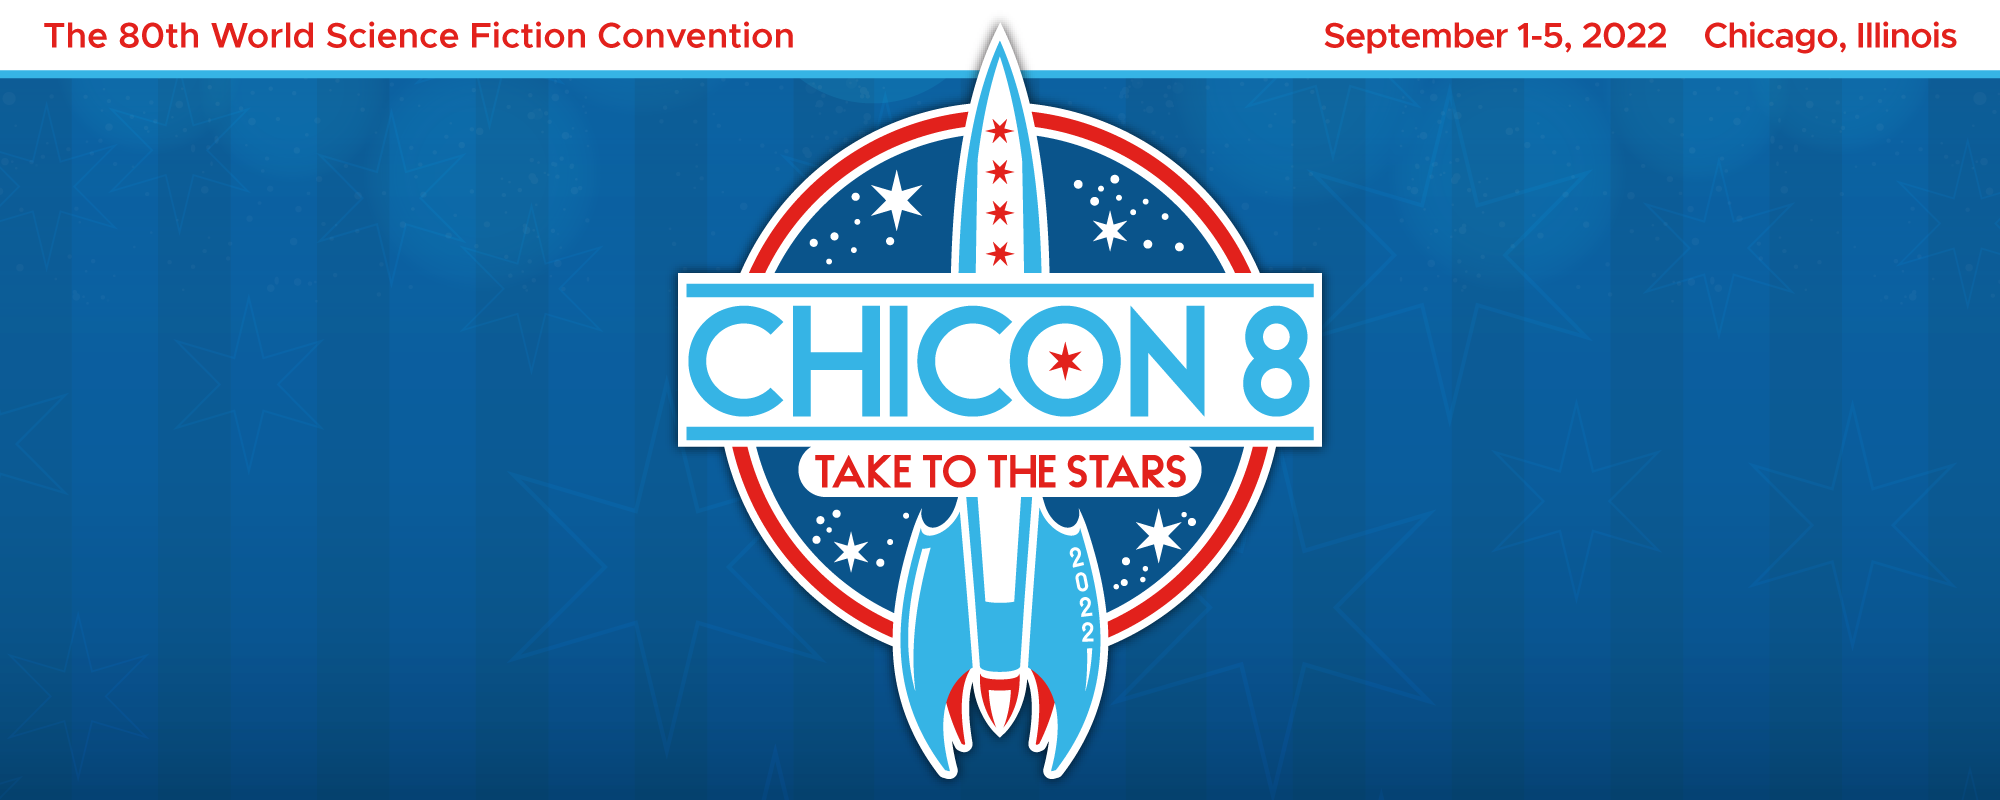 Chicon 8: The 80th World Science Fiction Convention - Chicon 8